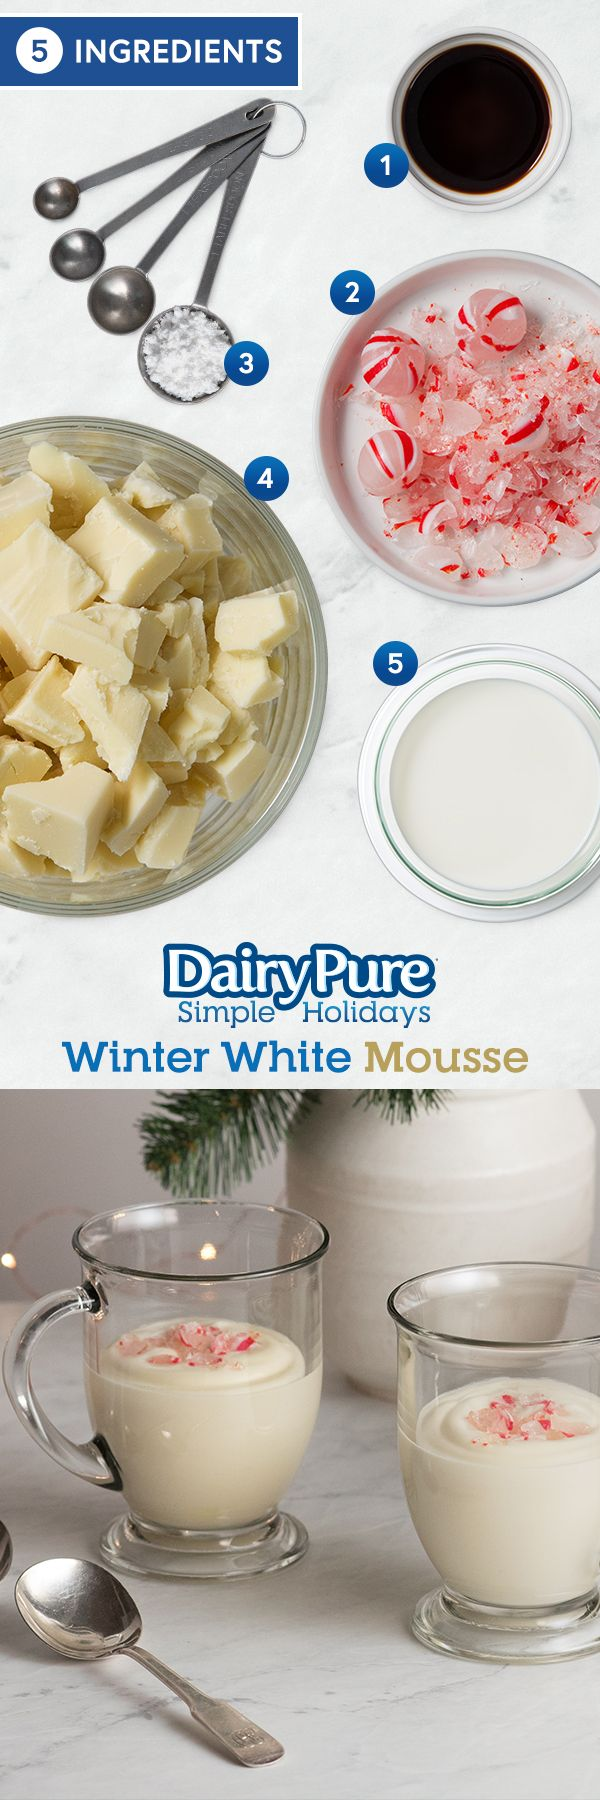 DairyPure® Winter White Mousse -- Whipping up a dessert for the holidays doesn't have to be stressful! Our white chocolate mousse is a light, fluffy treat that is as tasty as it is simple to make with just 5 ingredients.